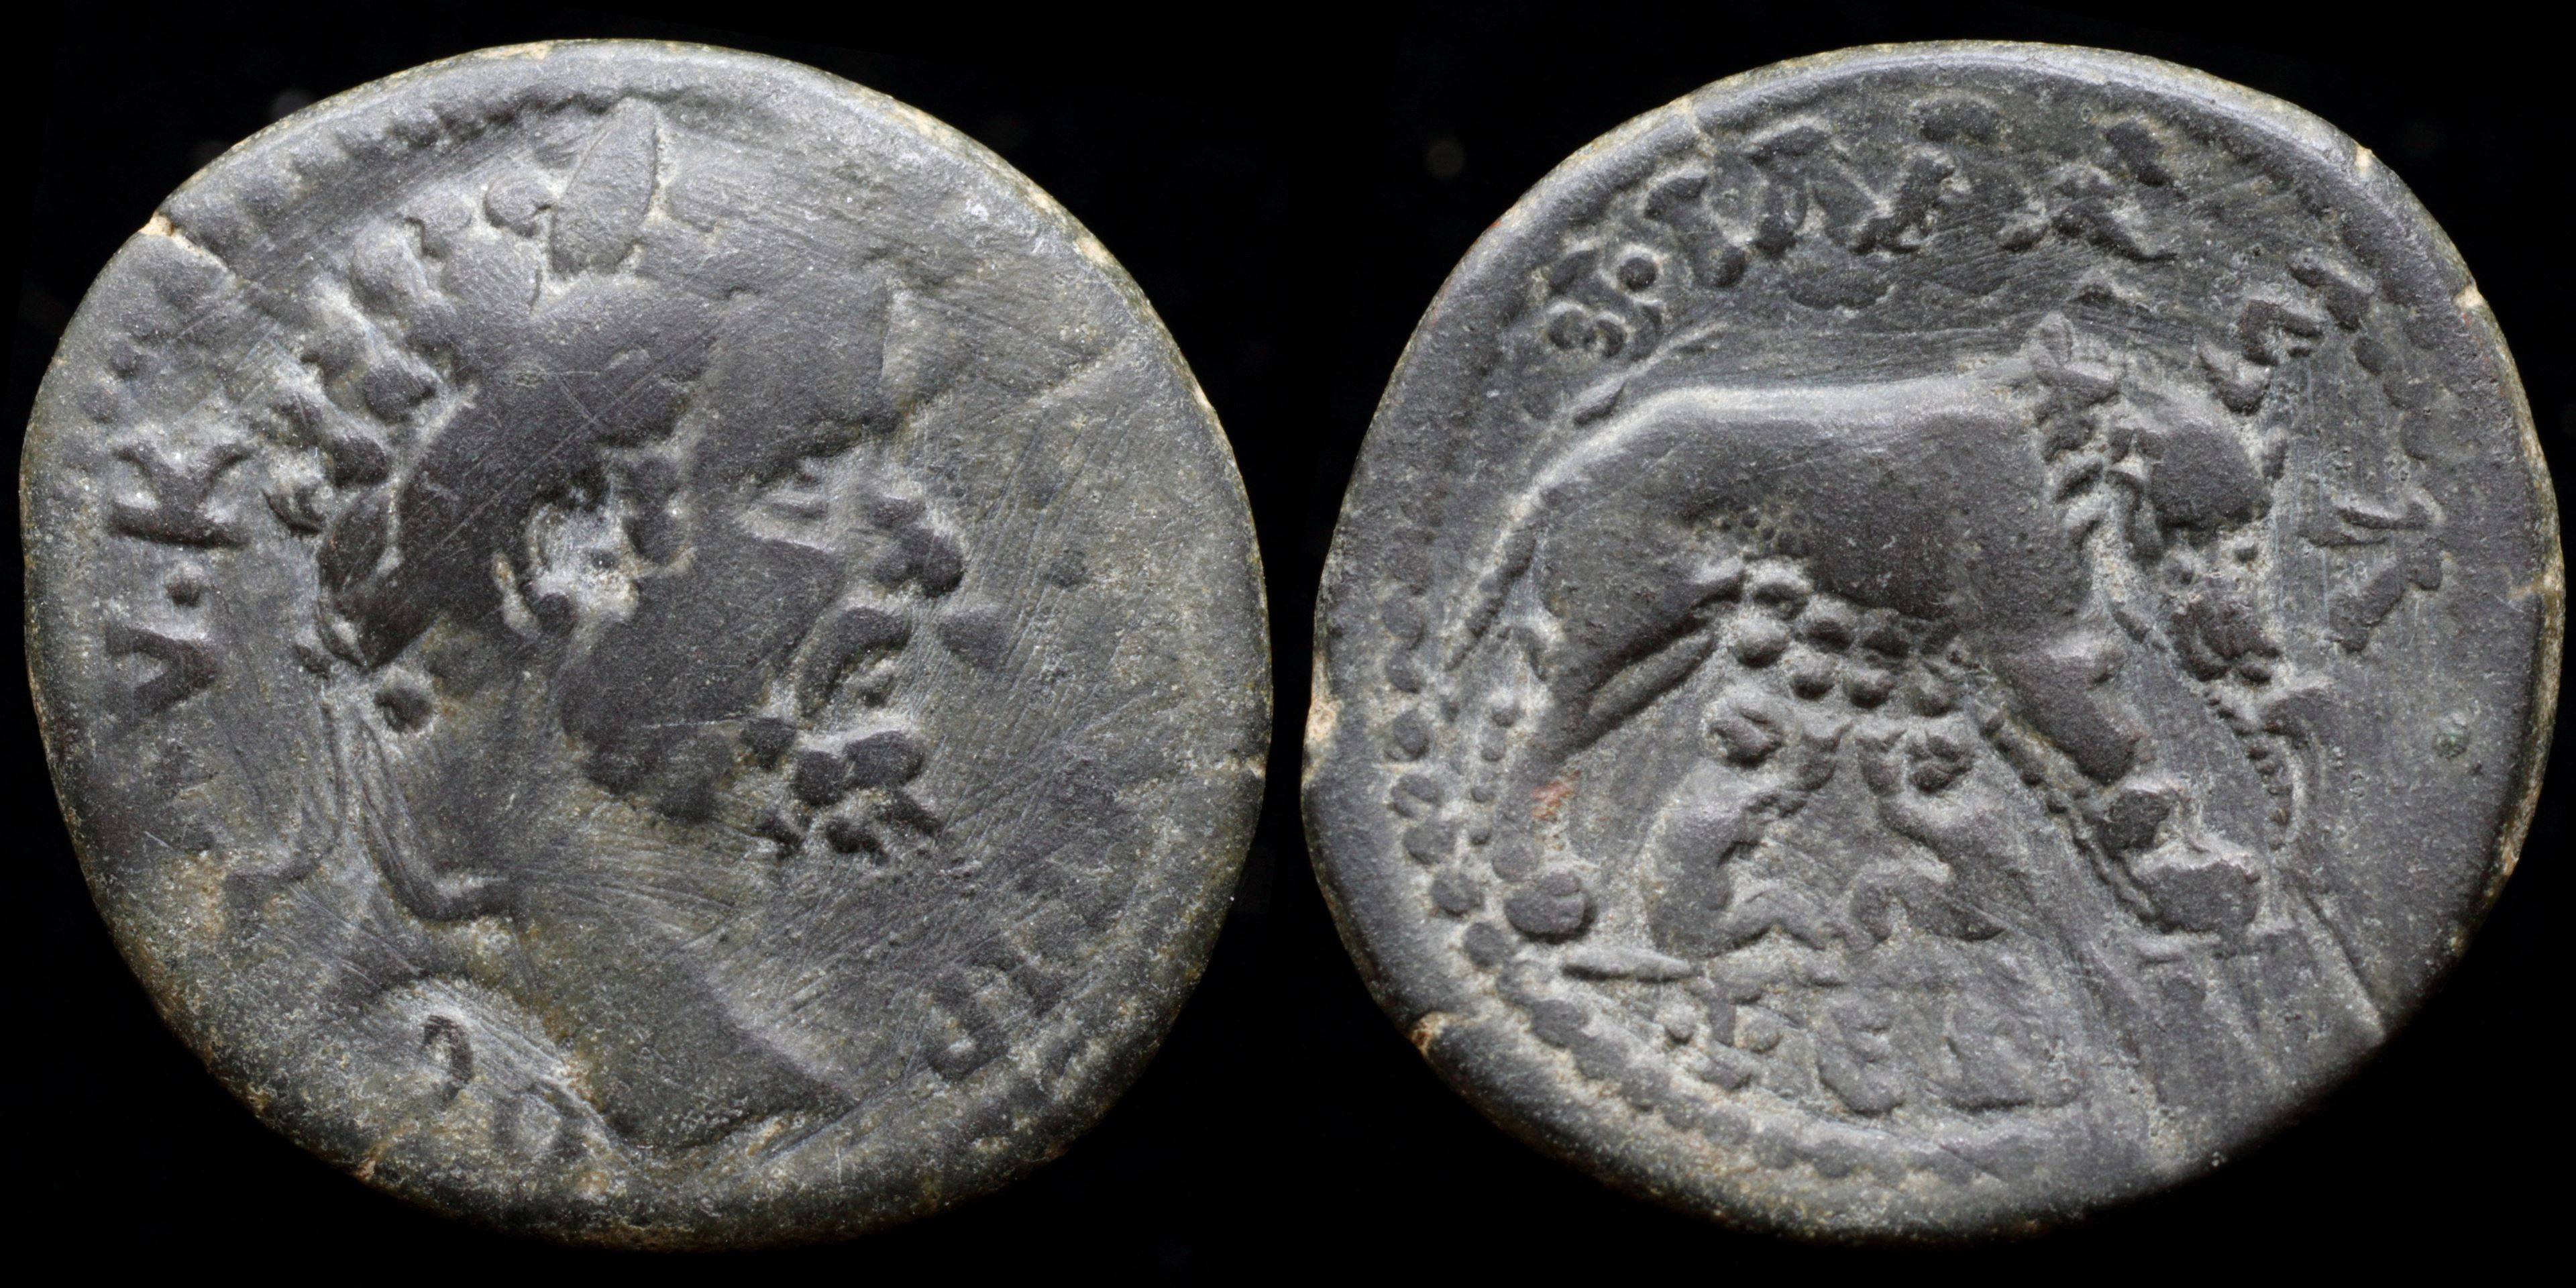 /Files/Images/Coinsite/CoinDB/Septimius_Severus_Philadelphia.jpg